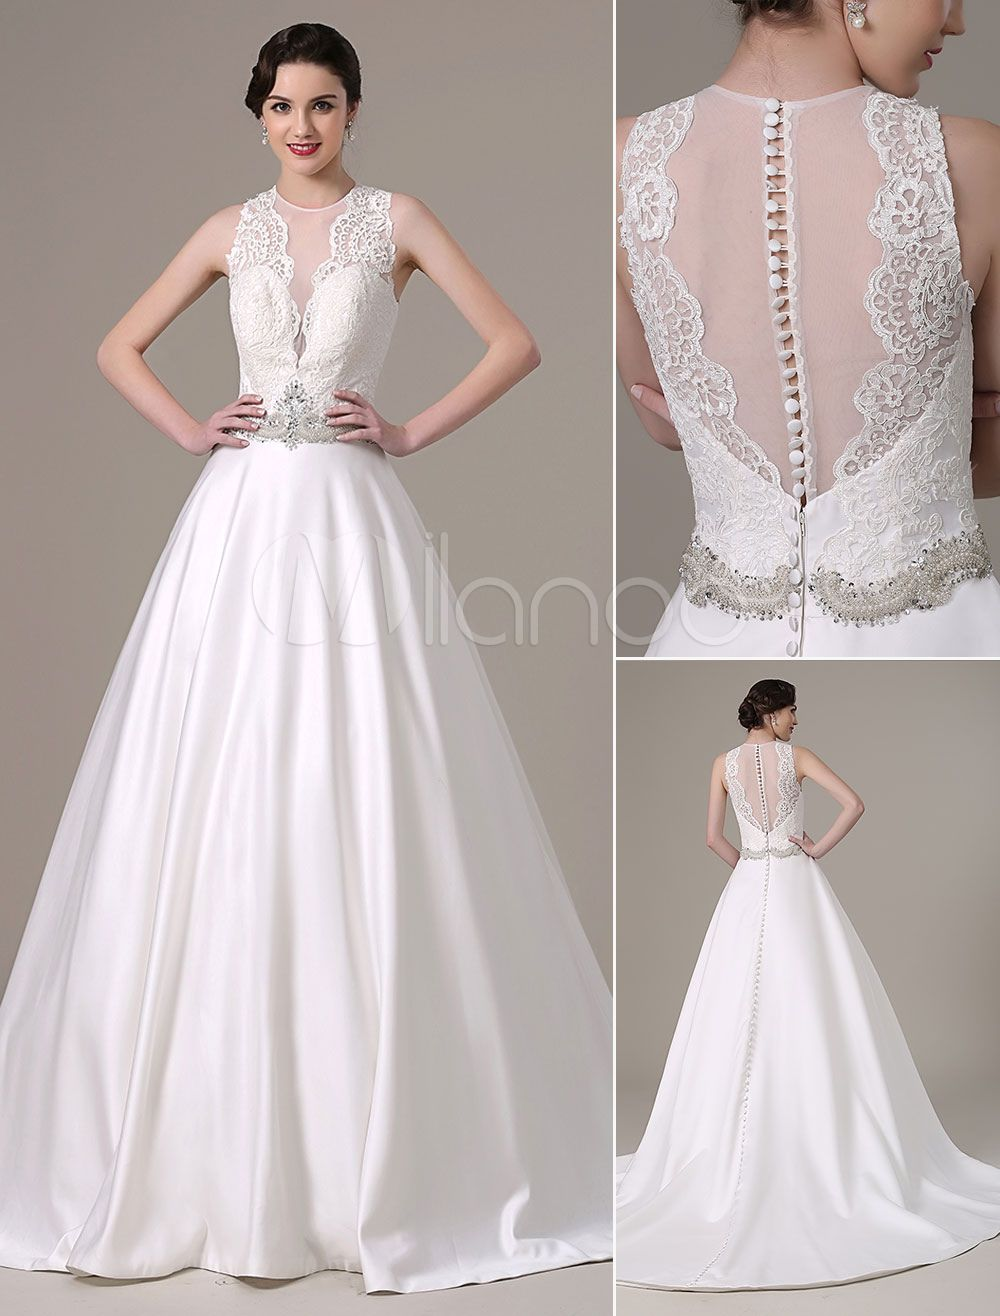 Lace ball gown wedding dresses   Satin And Lace Ball Gown Wedding Dress Pleated Sheer Bodice And